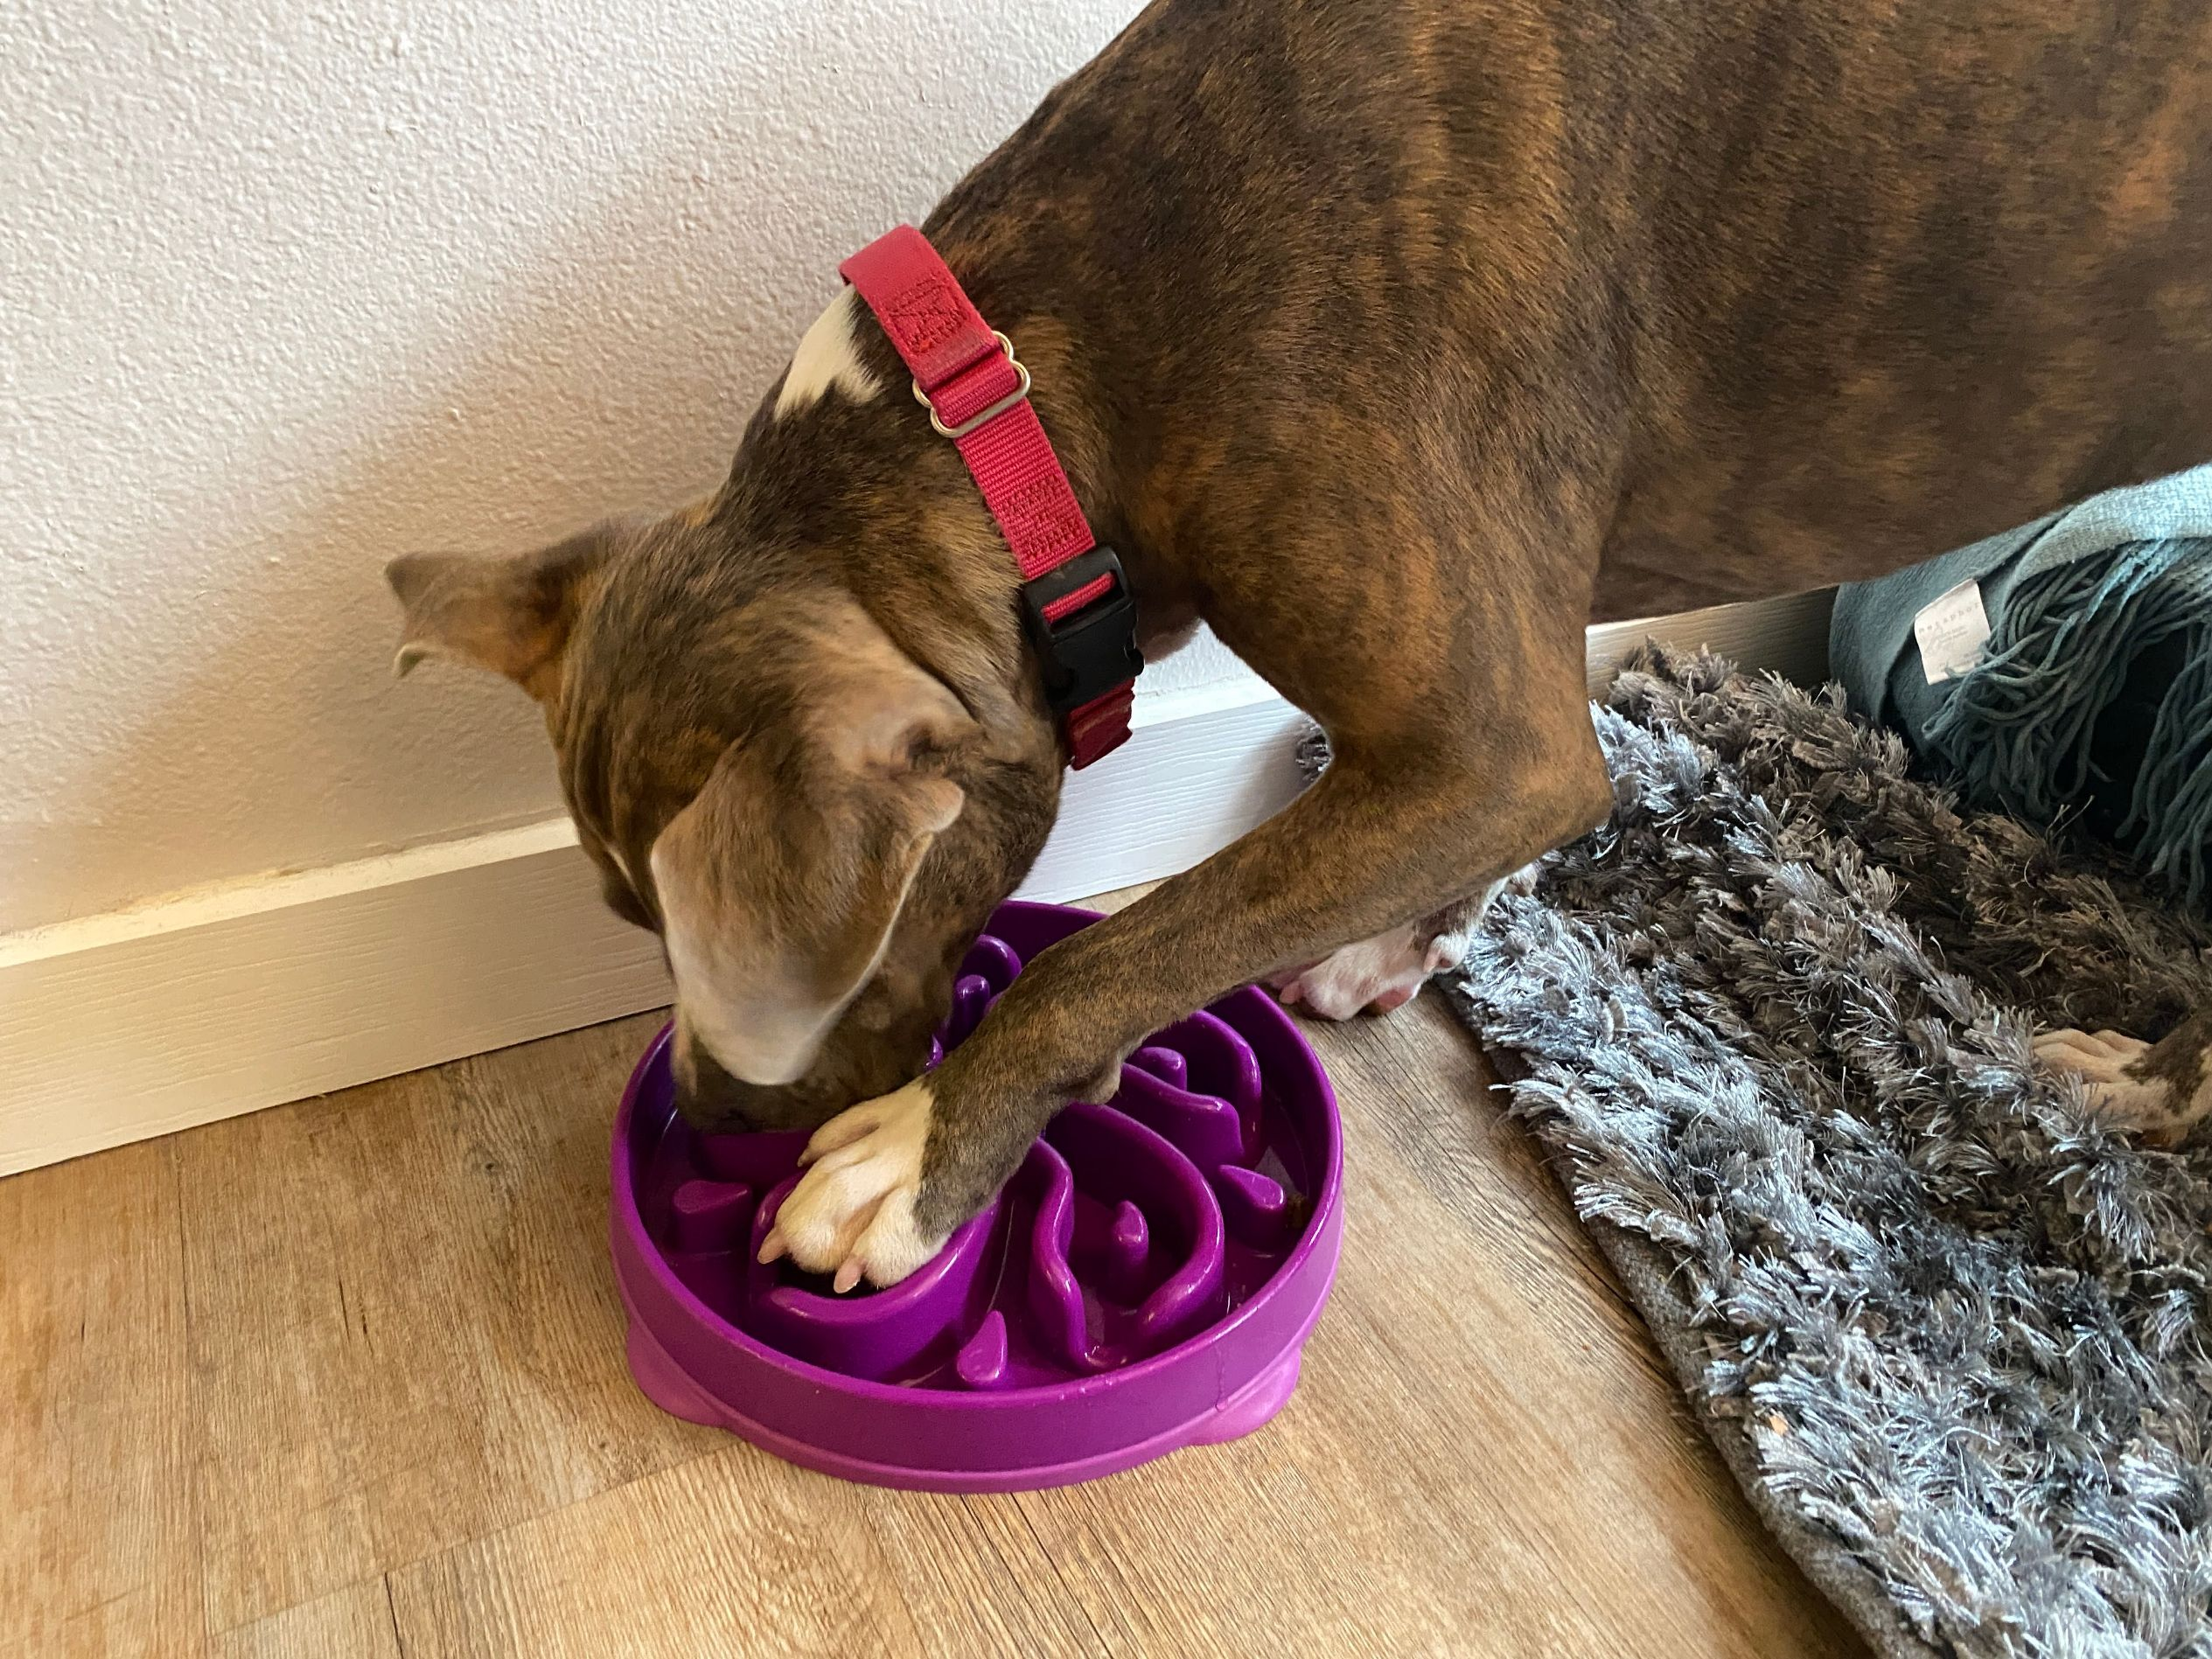 Dog eating food from a maze bowl